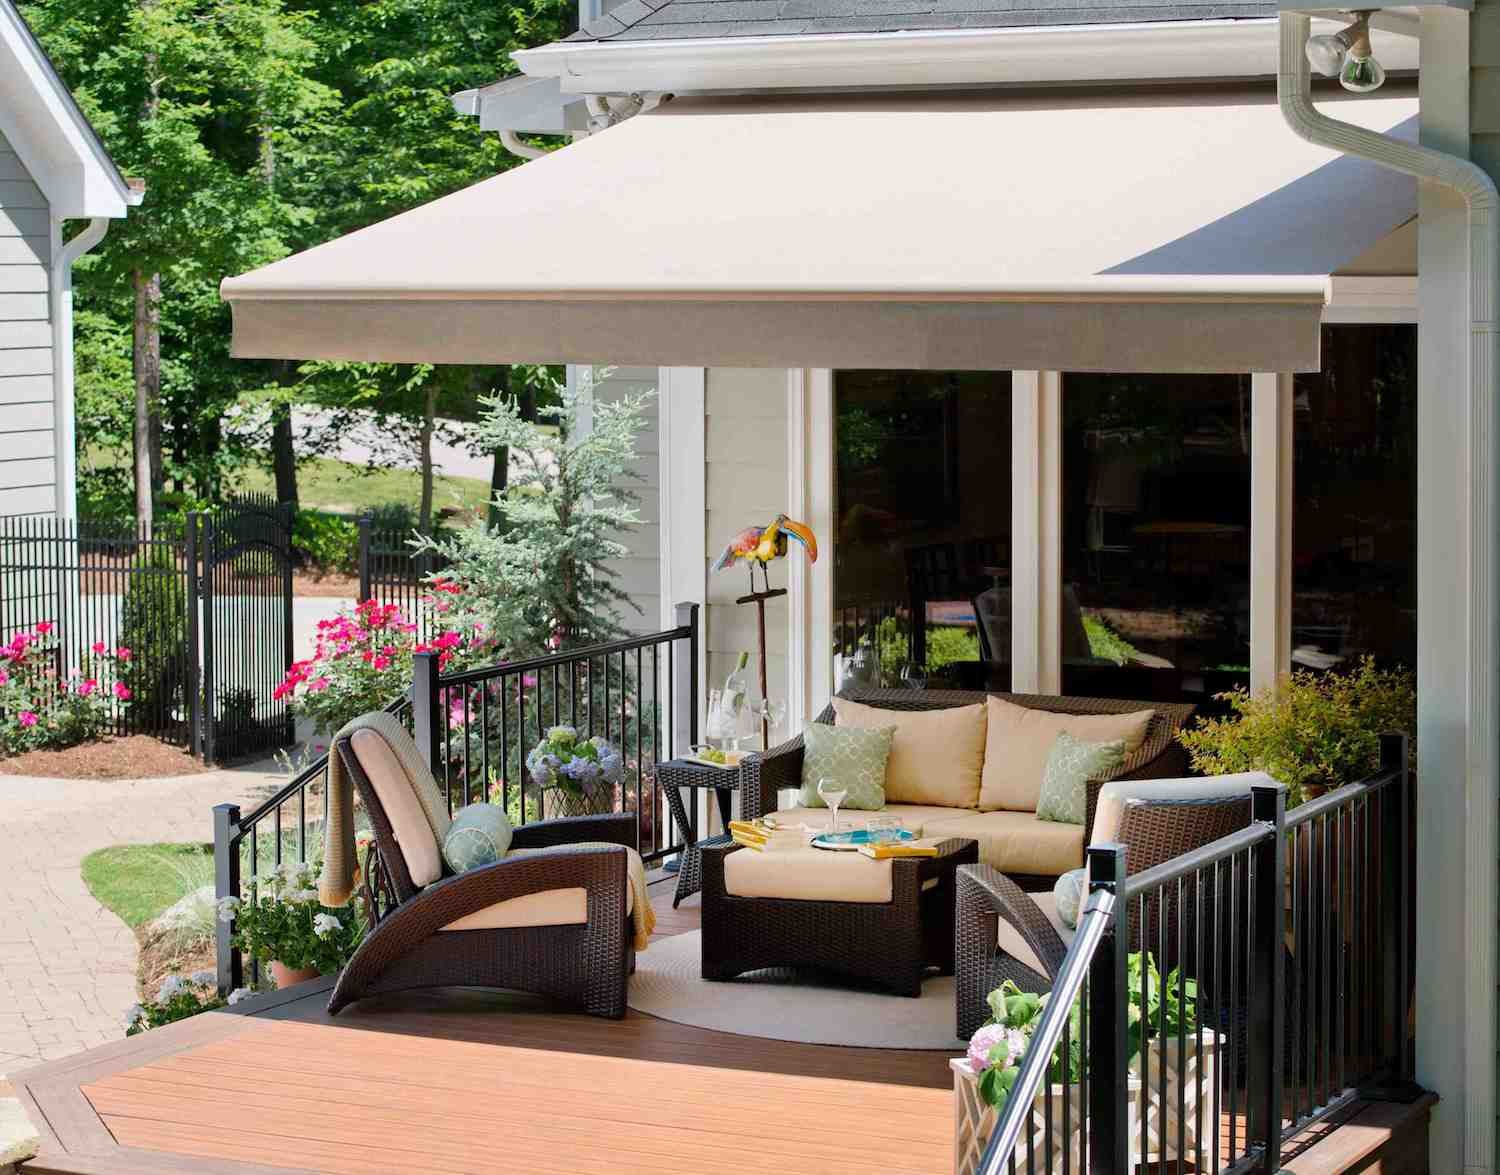 Sizing Options And Sunbrella® Fabric Selections Make An Impression On  Customers.